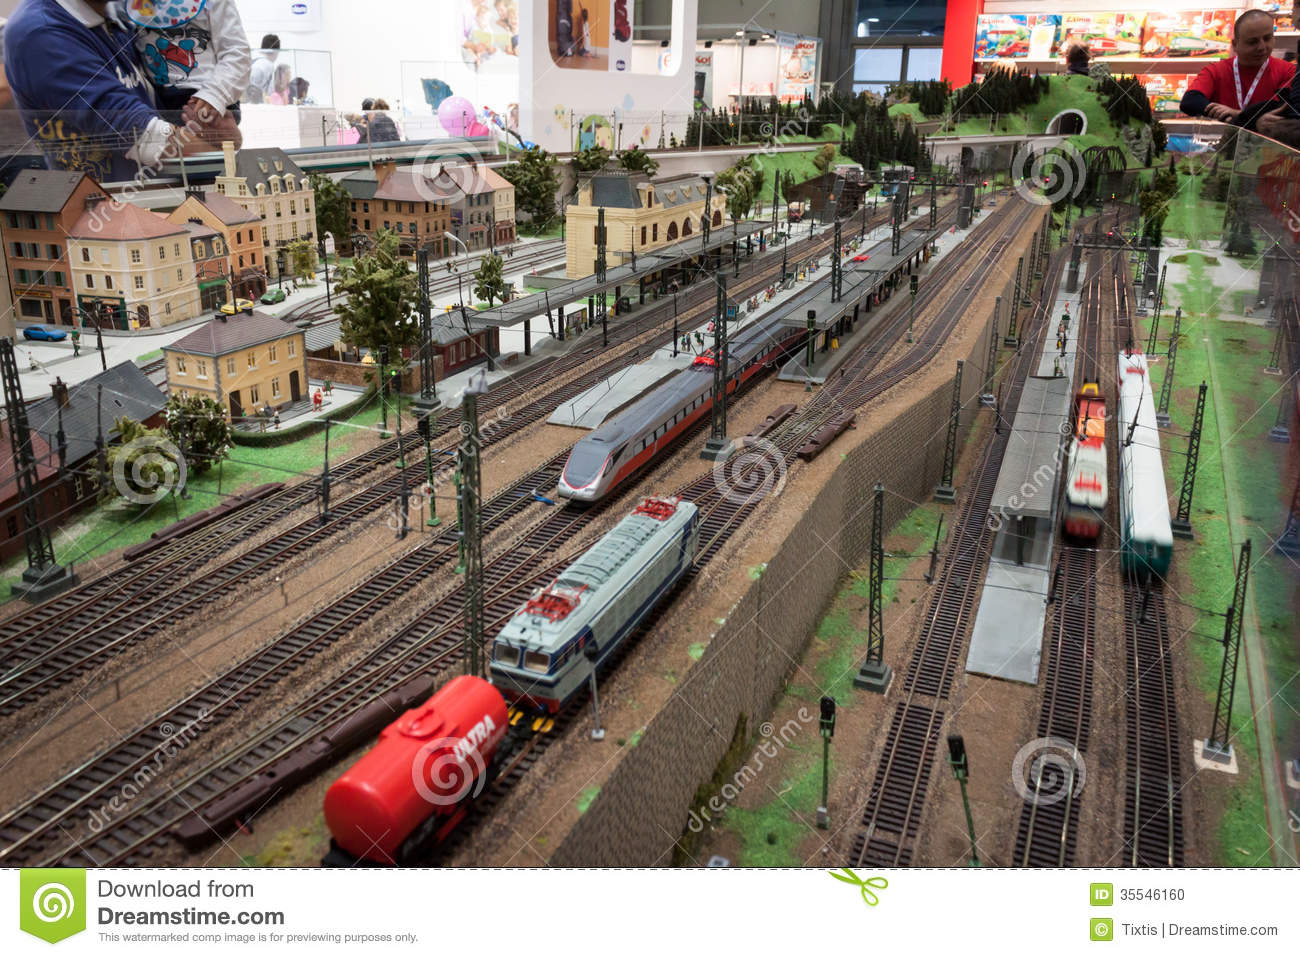 Exhibition Stand Entertainment : Railway diorama at g come giocare in milan italy